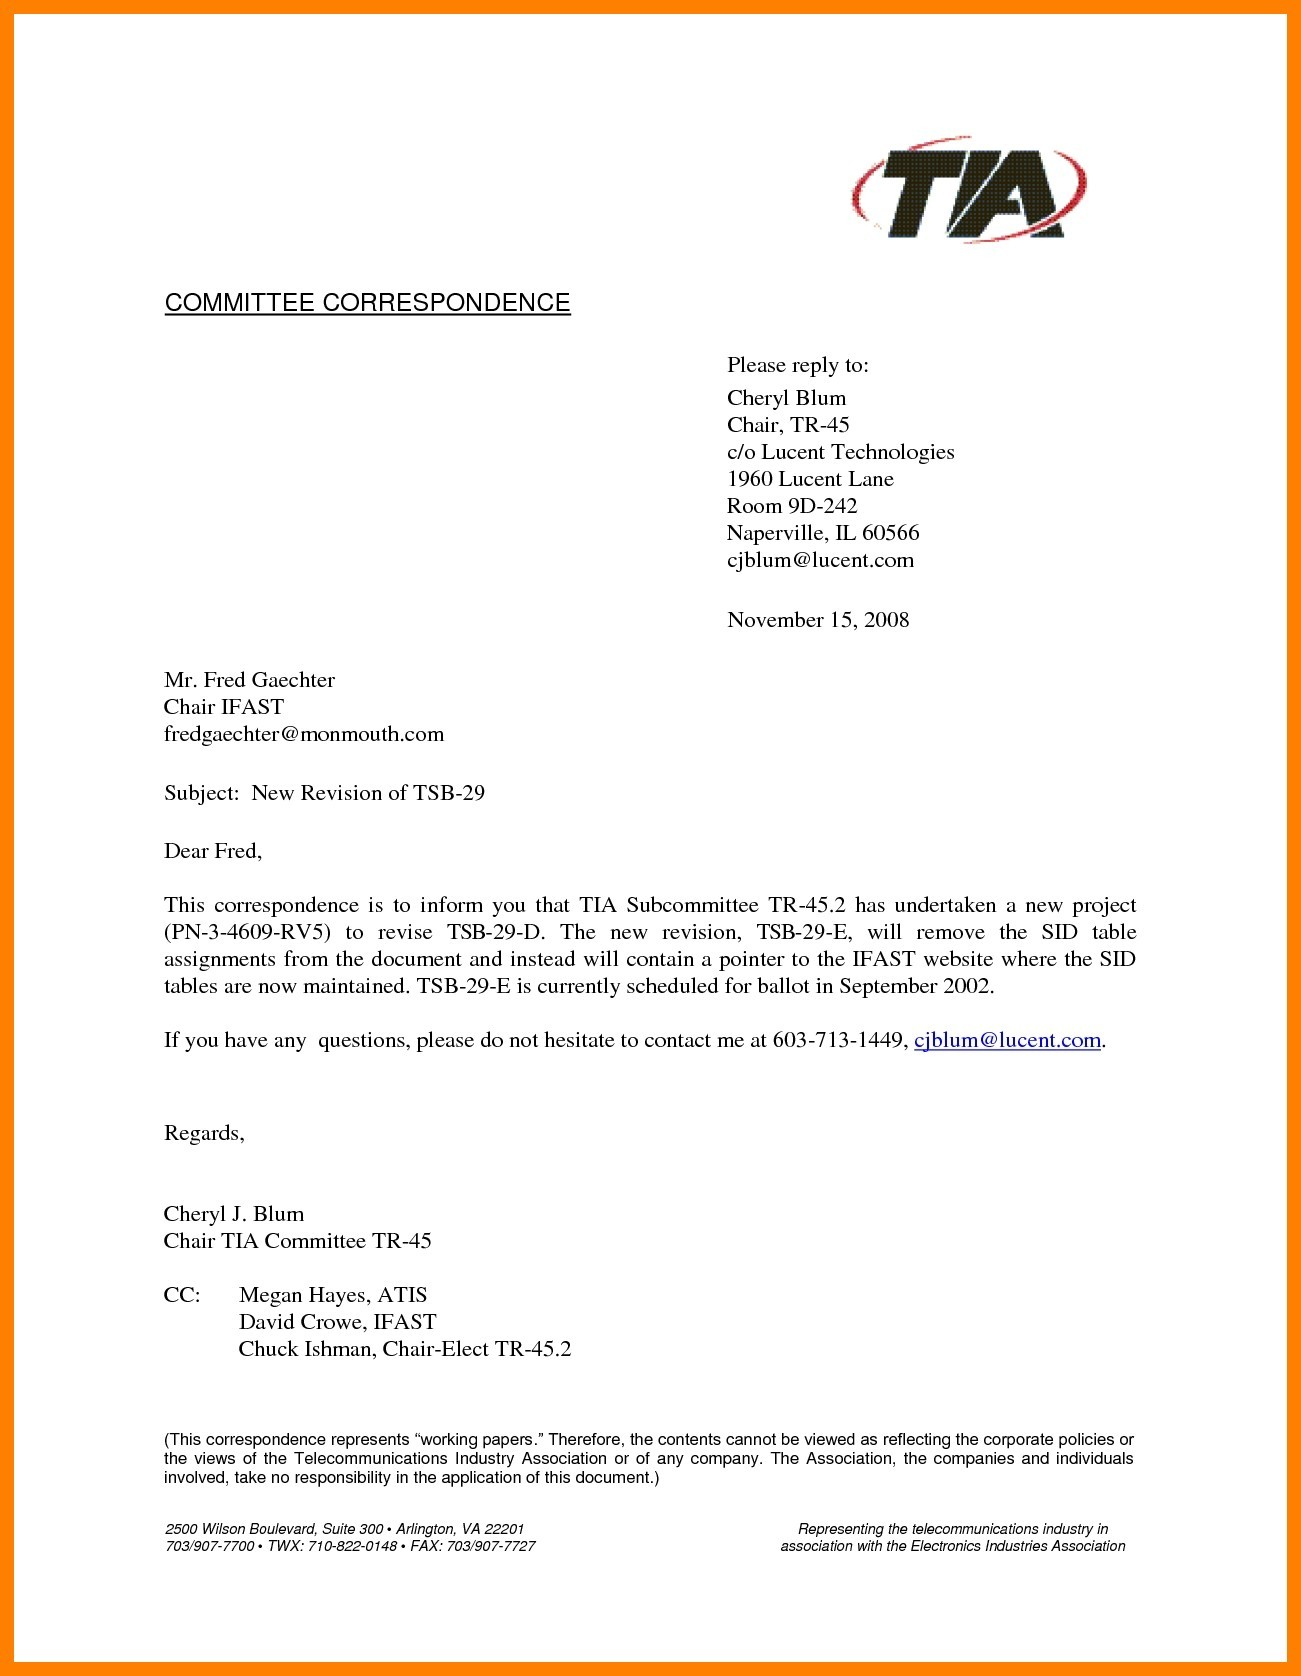 professional letter template with cc  Cc On A Letter | scrumps - professional letter template with cc